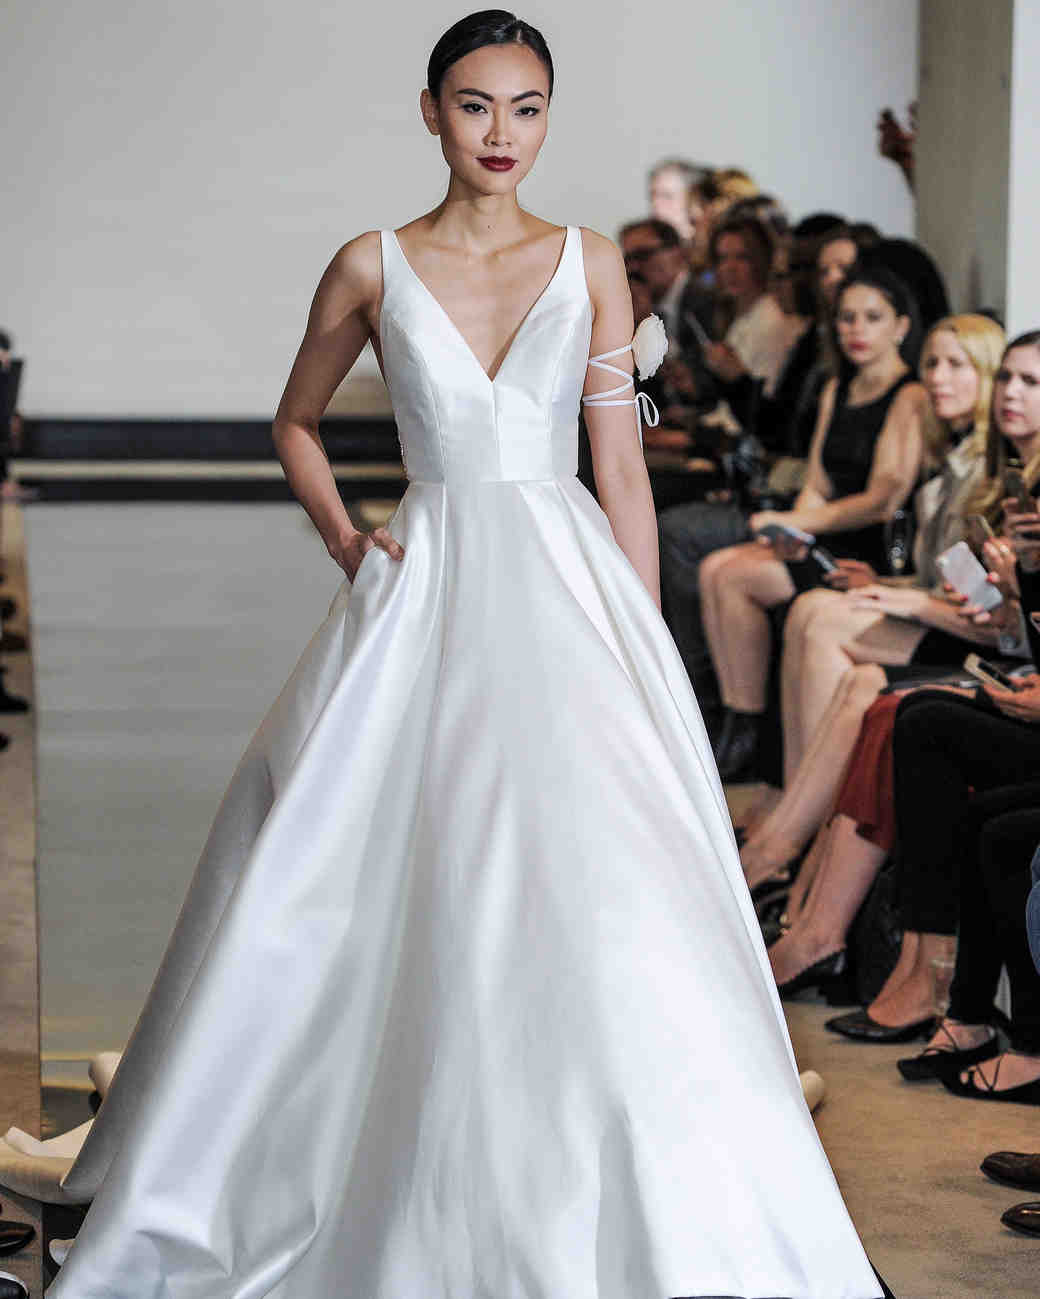 Dress Gowns For Weddings: Simple Wedding Dresses That Are Just Plain Chic